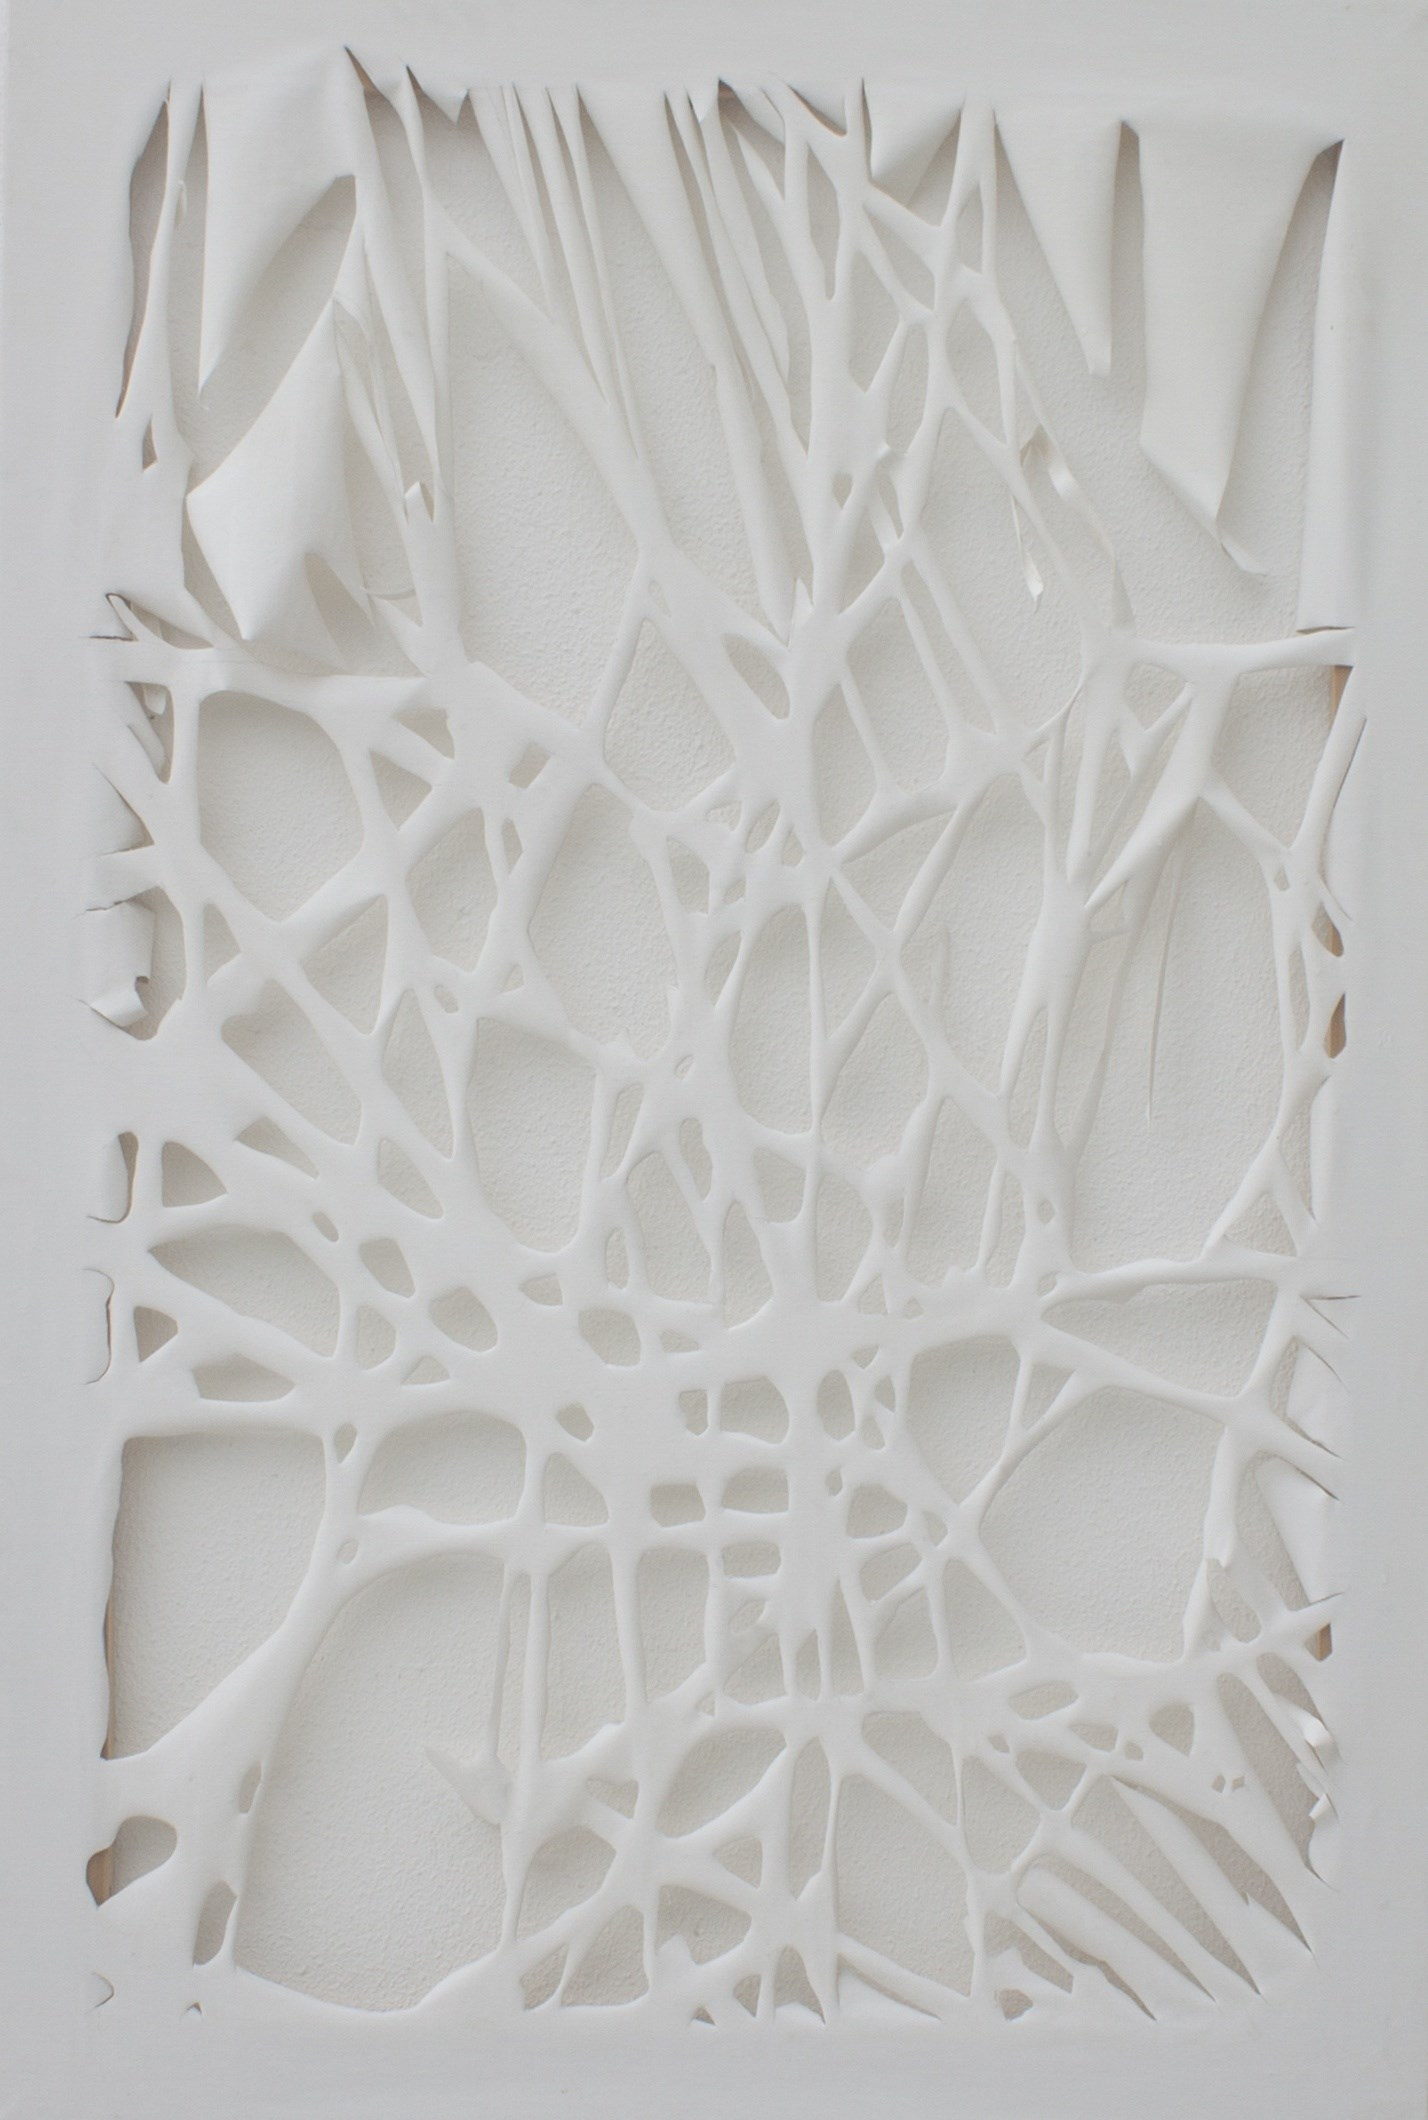 Incisão 1, original Abstract  Sculpture by Marisa  Piló